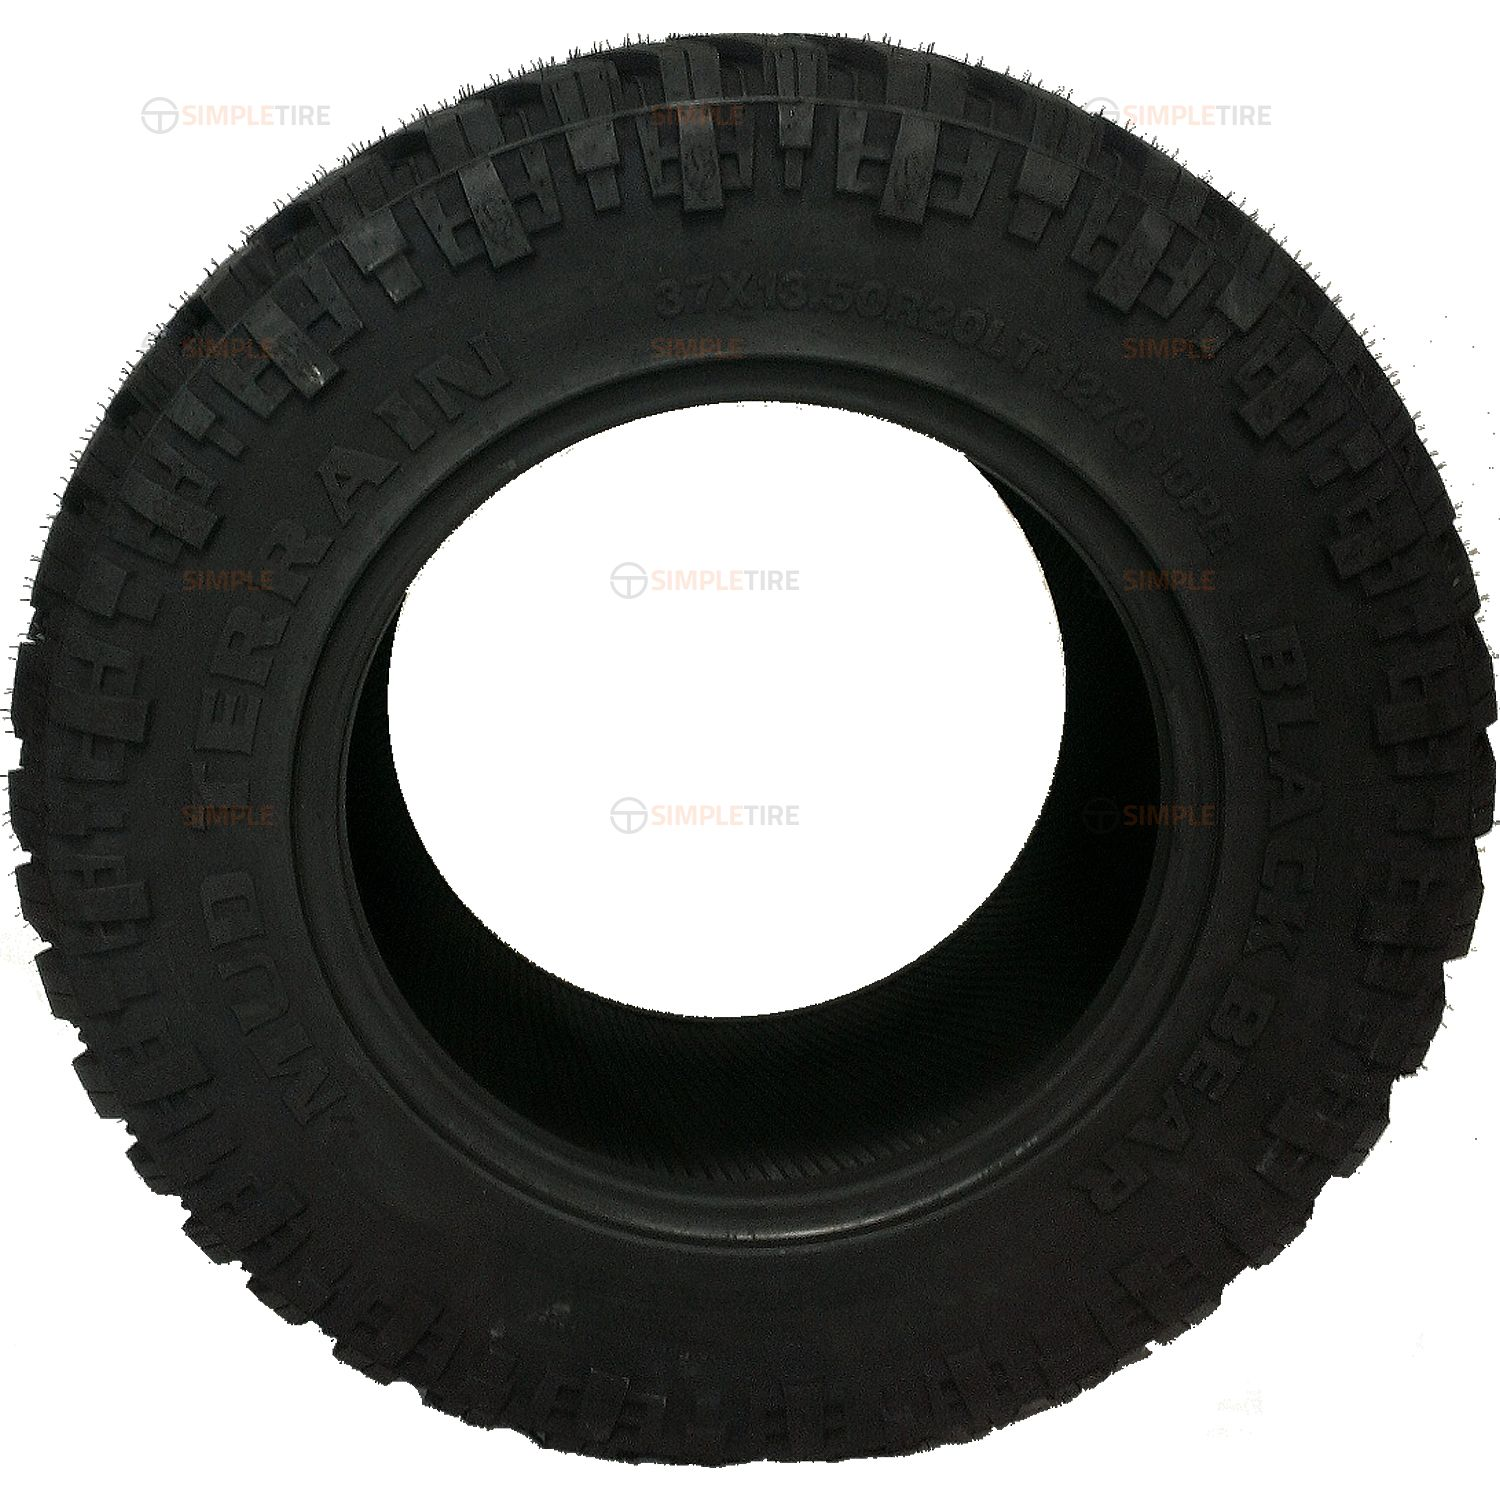 3322013737 LT37/13.5R17 Mud Terrain Black Bear